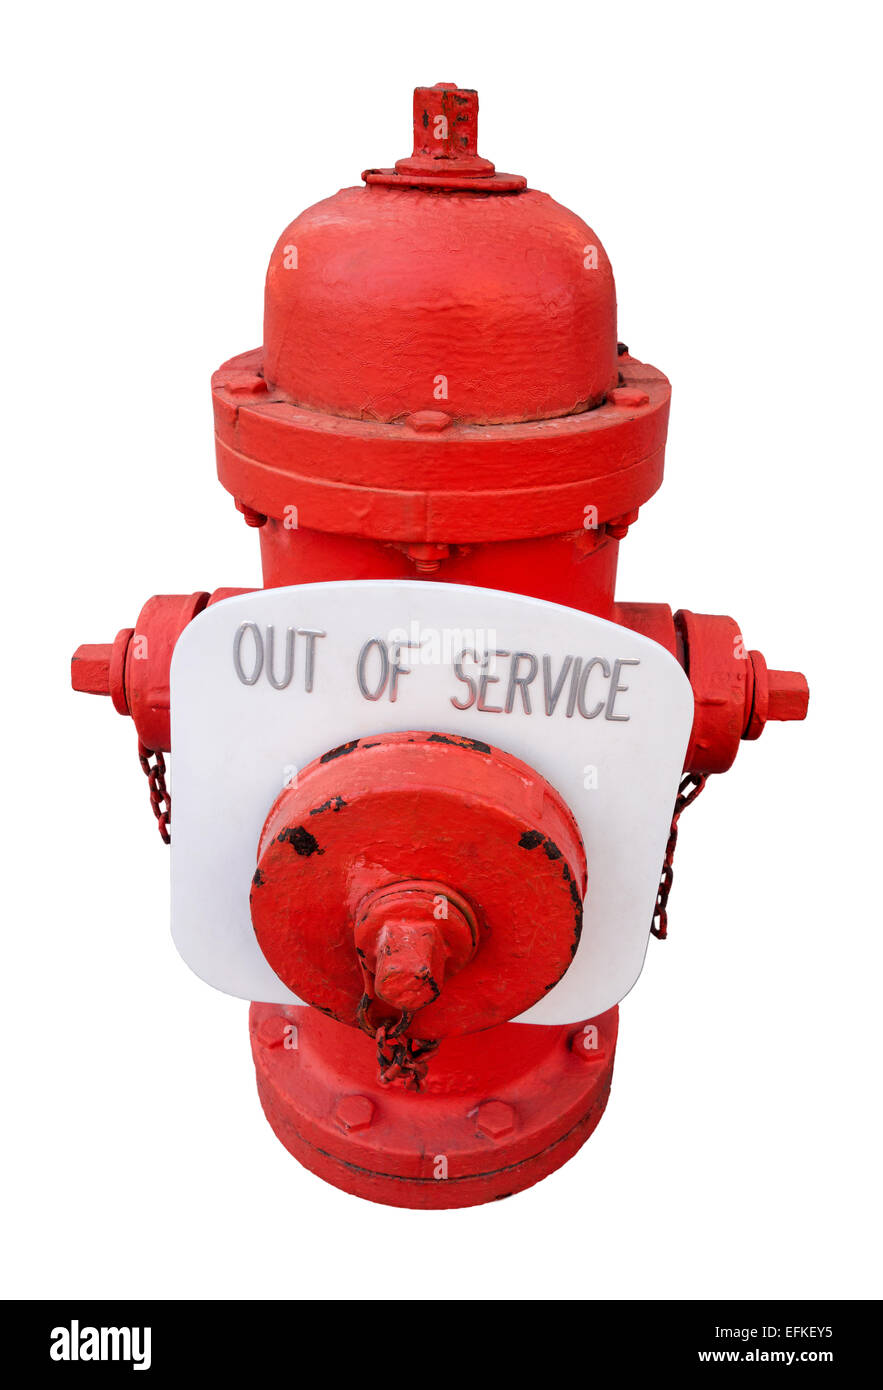 Red US Fire Hydrant with out of service sign; not working, broken, unsafe, unreliable fire plug. Safety problem, - Stock Image